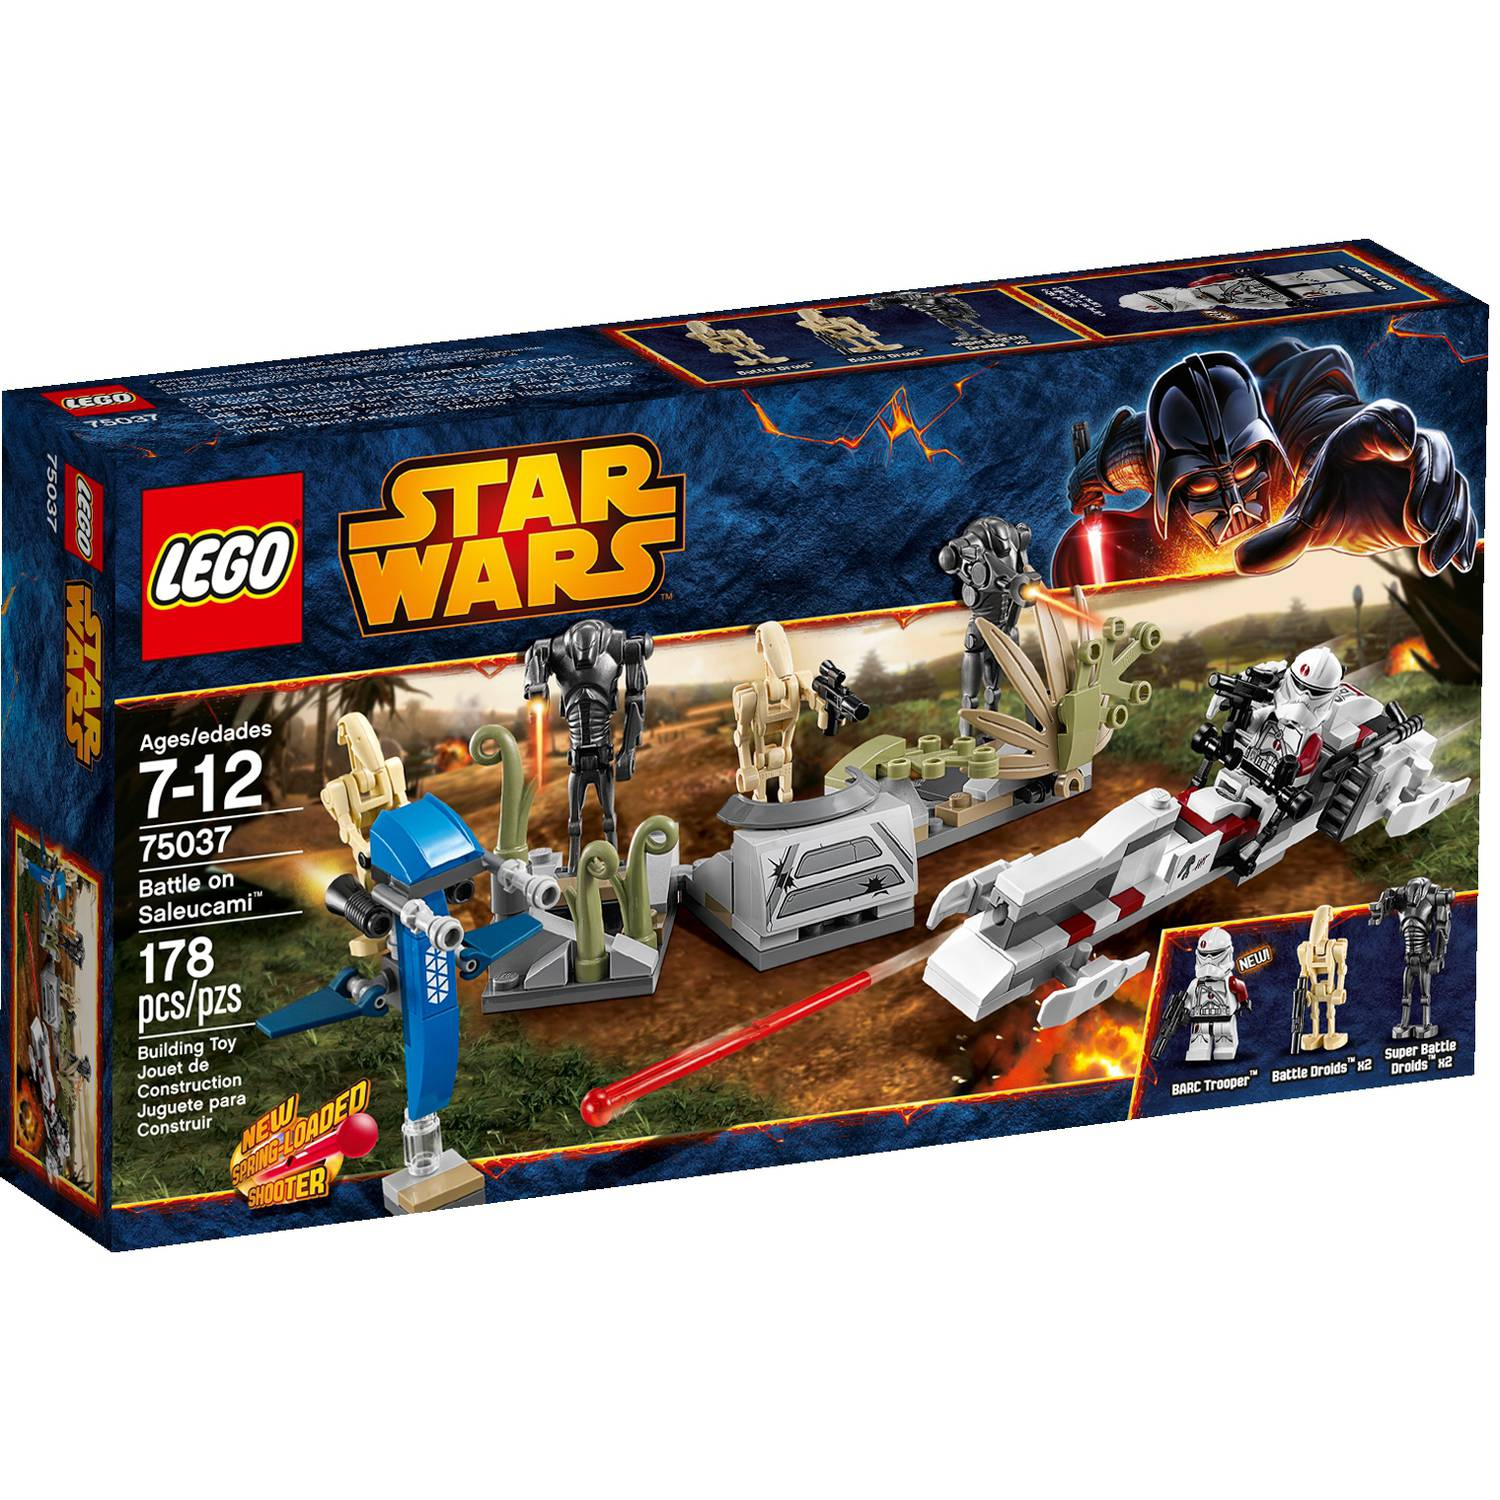 Nov 10, · In addition to all the LEGO bricks needed to construct the ship, this set includes six iconic Star Wars figures and weapons like blaster pistols and bowcasters. The LEGO Star Wars Millennium Falcon is a must-have for Star Wars fans, and it makes a perfect companion to .